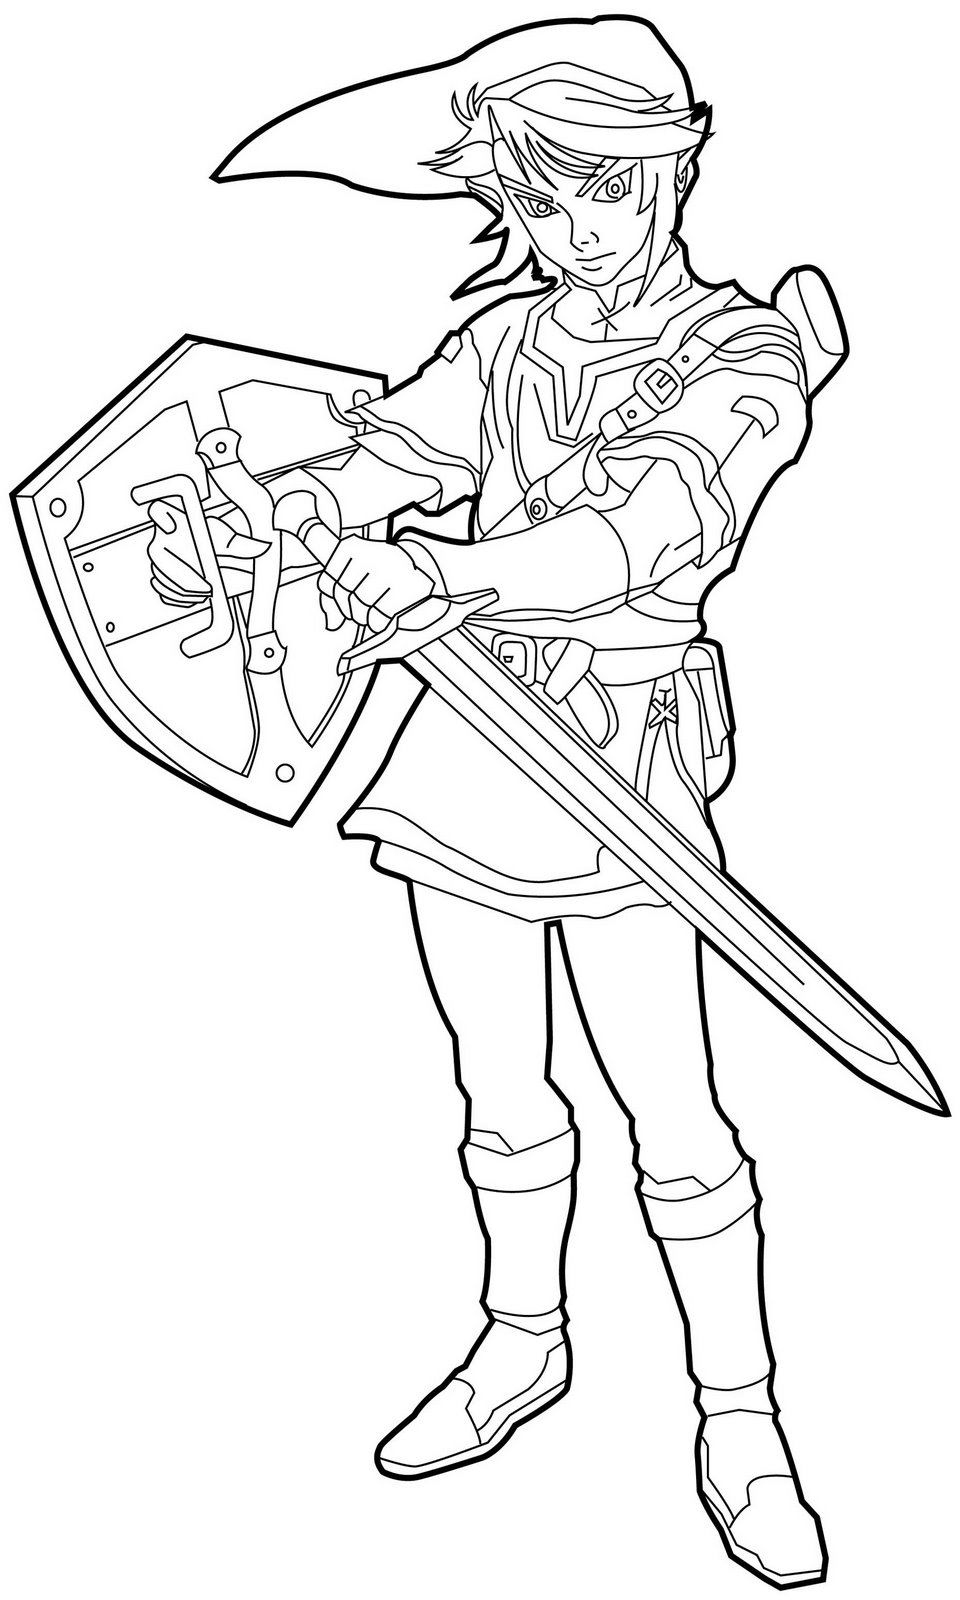 Free Printable Zelda Coloring Pages For Kids dedans Coloriage Zelda Twilight Princess